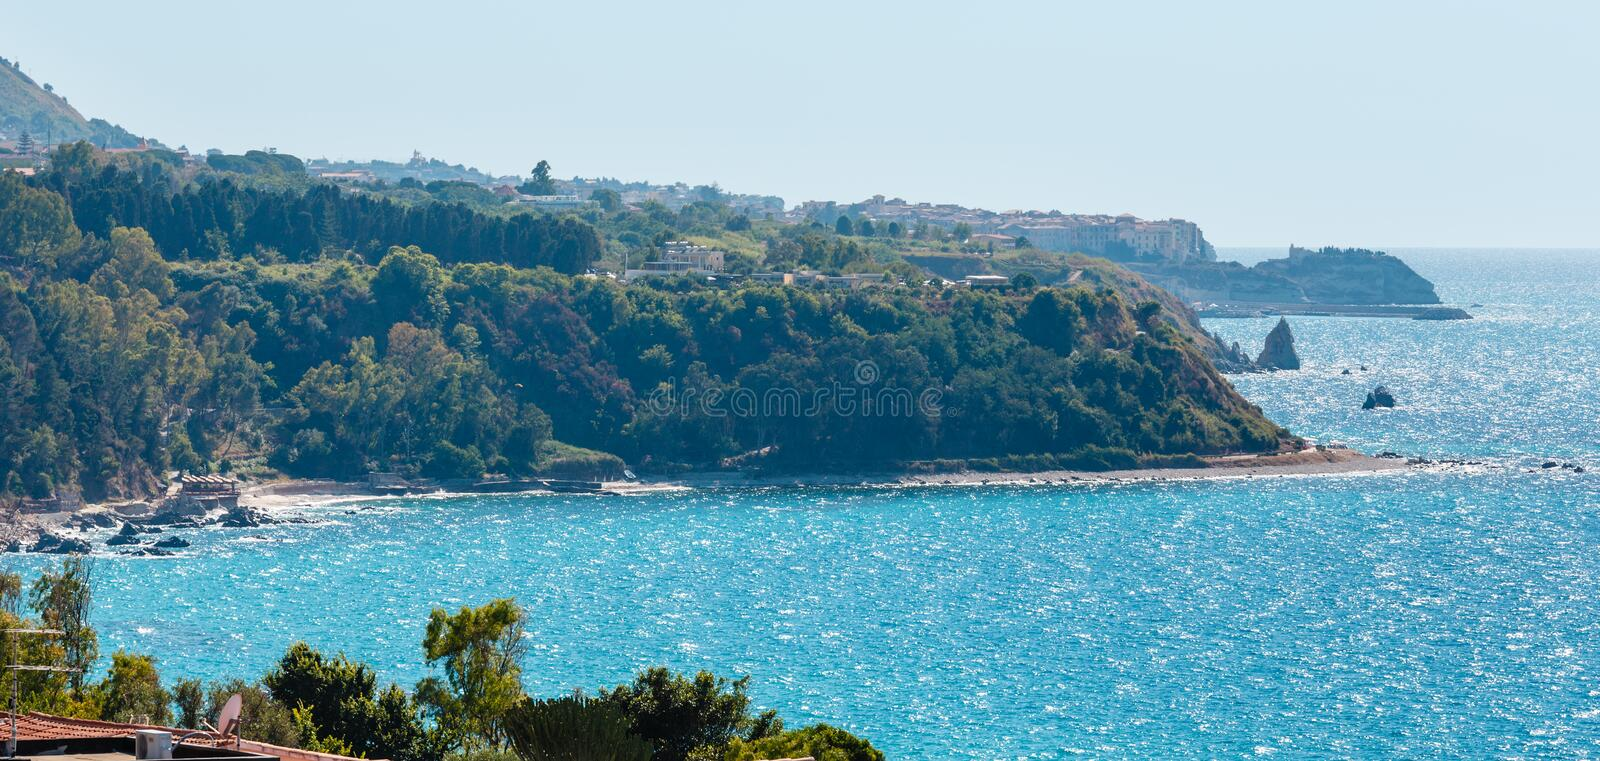 Tyrrhenian sea landscape, Calabria, Italy royalty free stock images